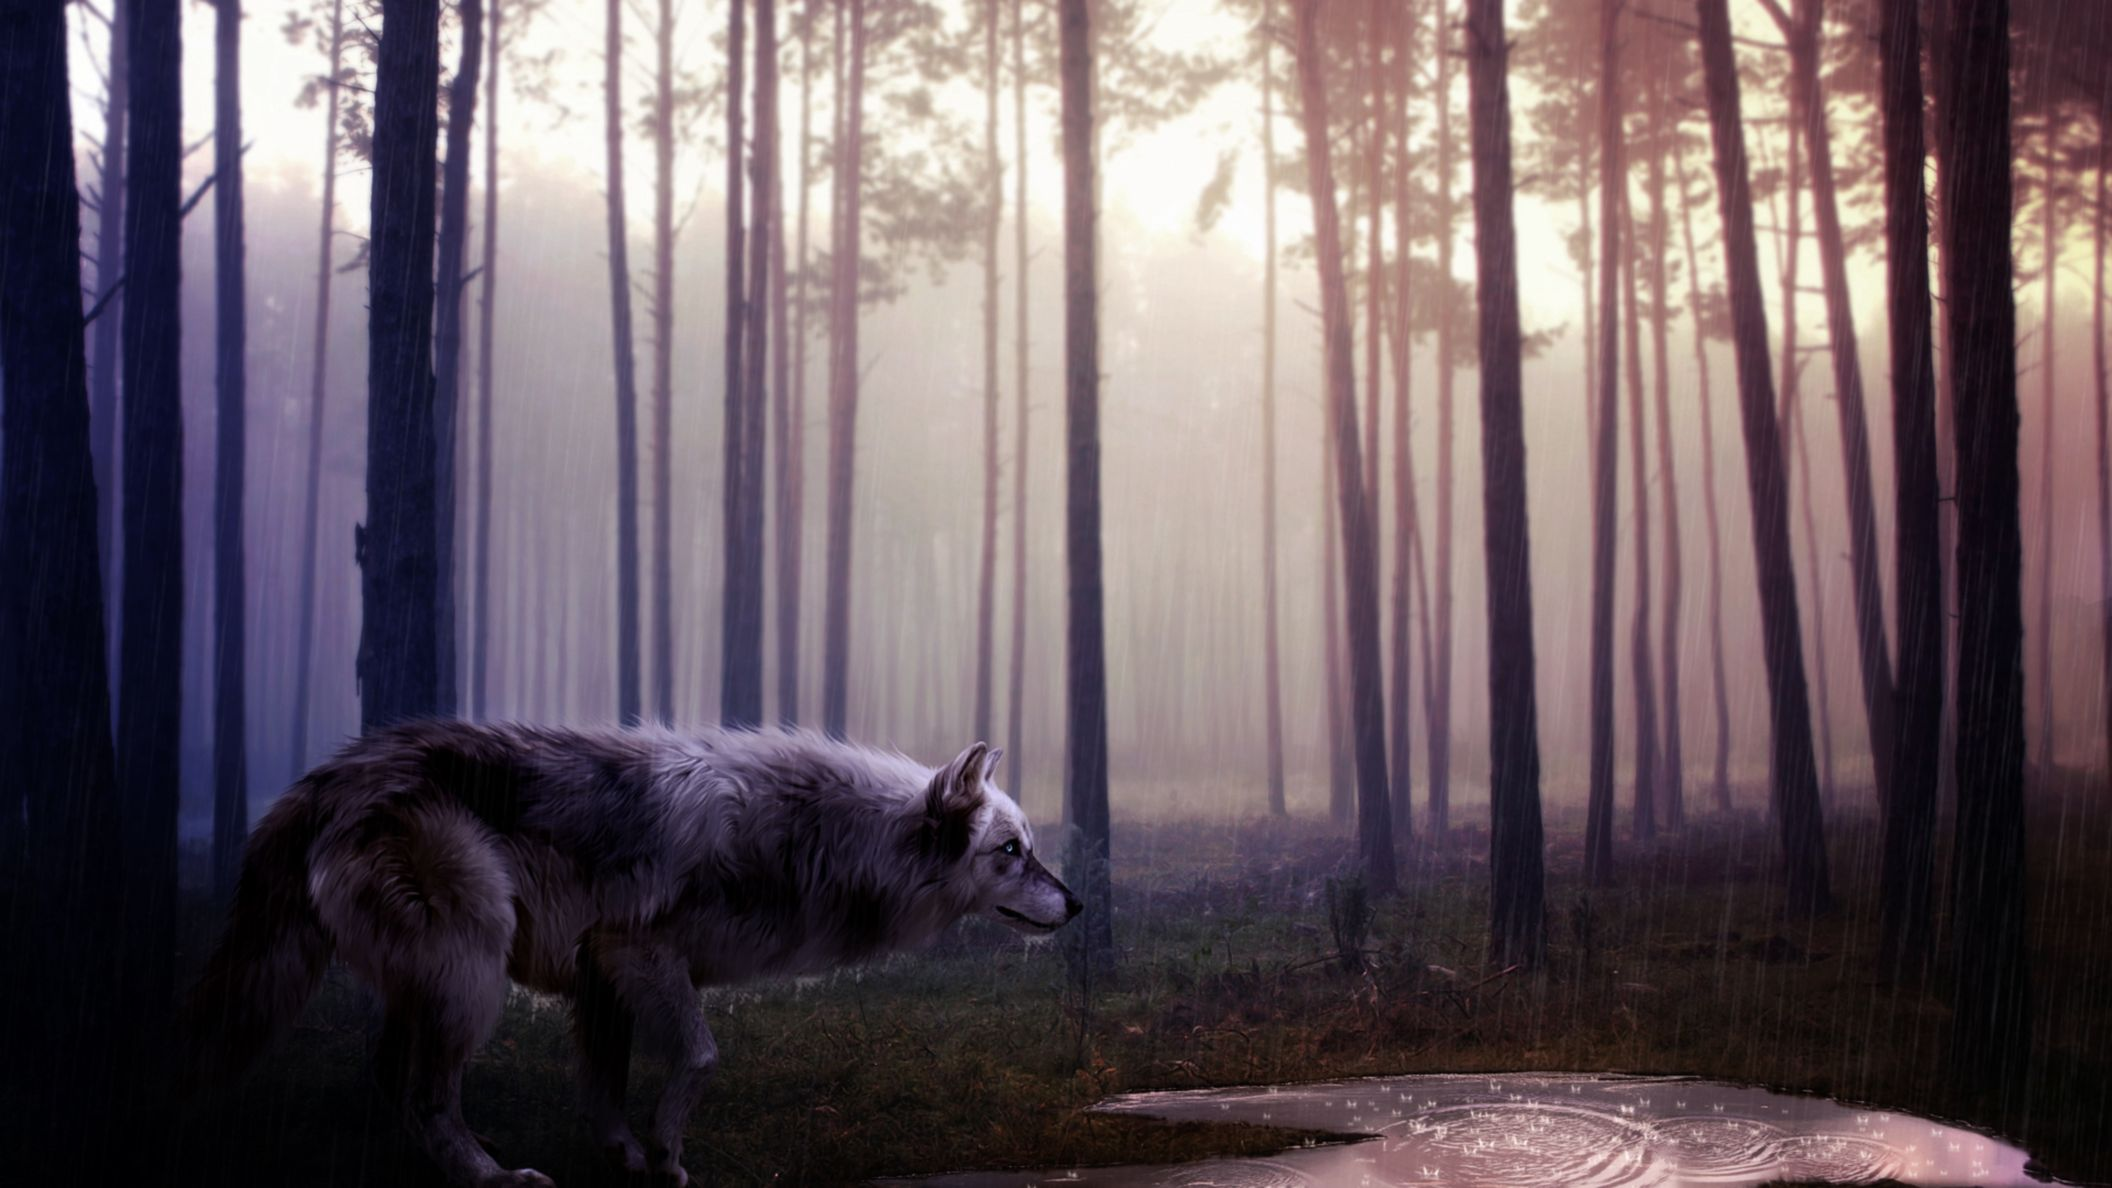 Download free HD Wild Wolf HD Wallpaper, image